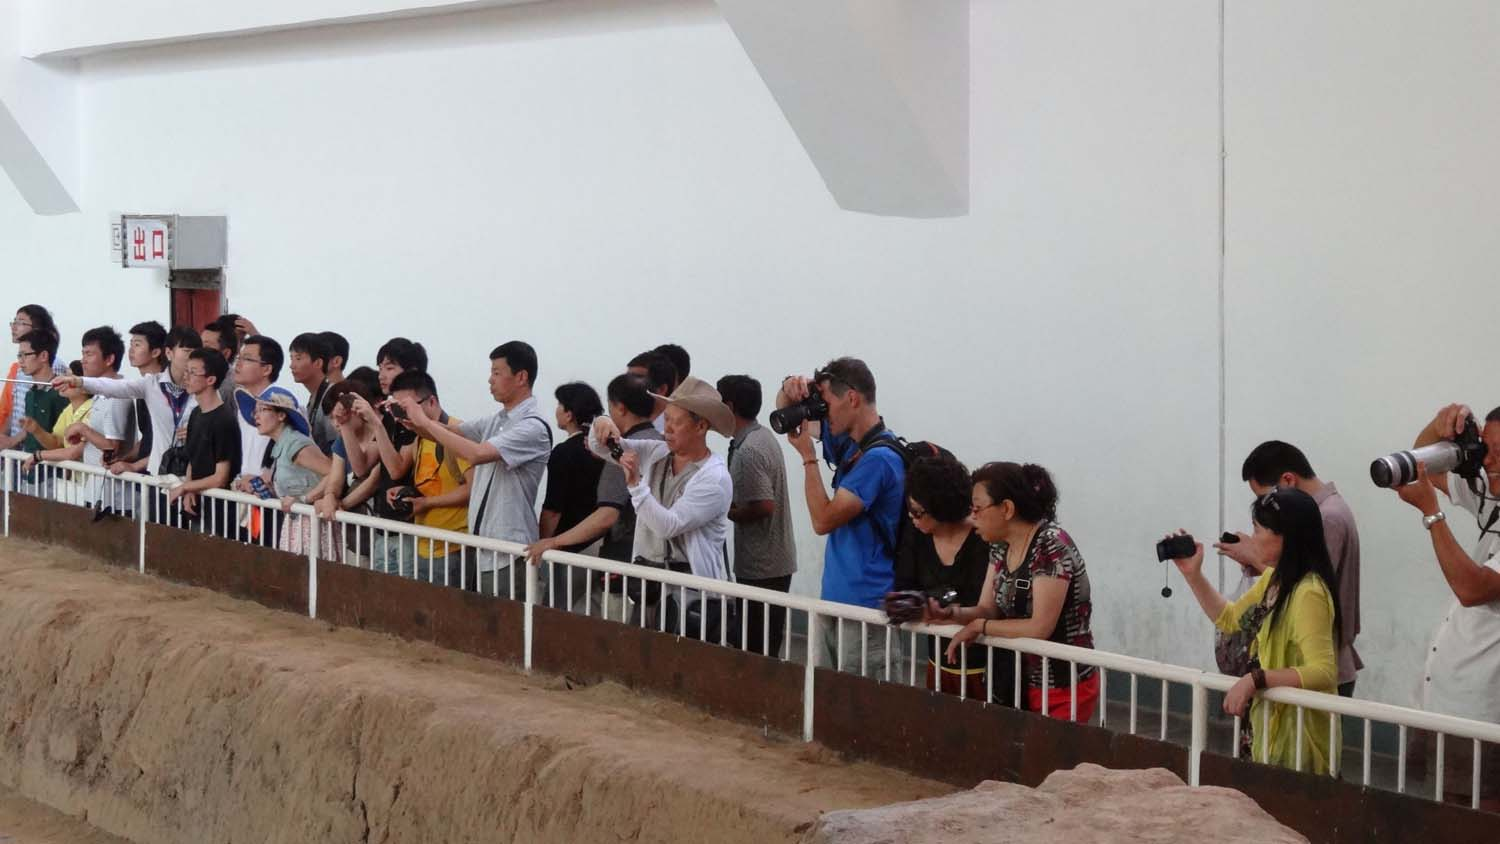 this was early morning crowds at the terracotta warriors